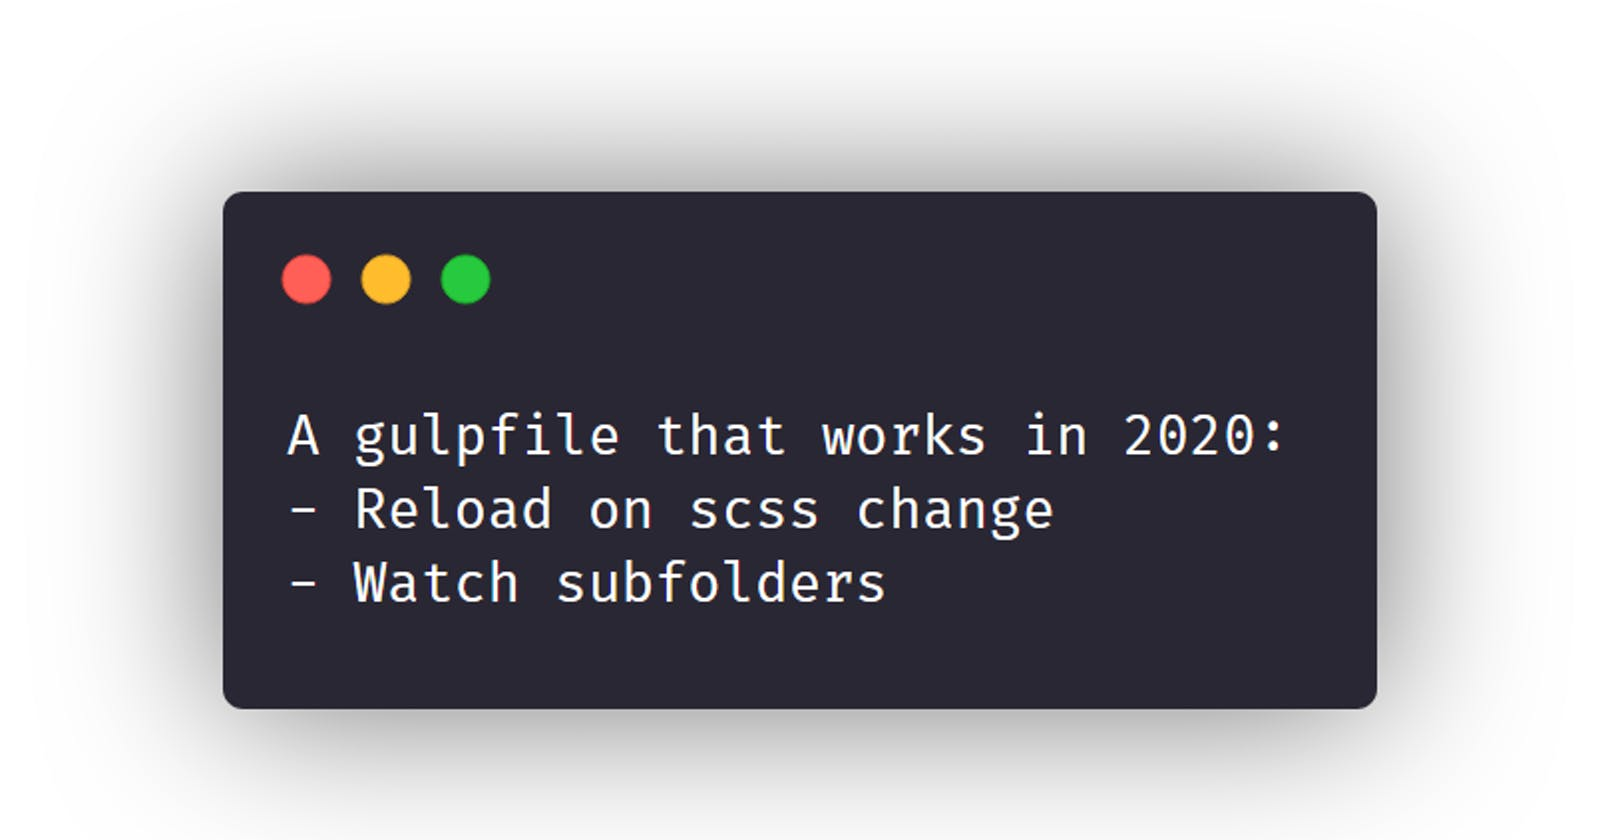 A gulpfile that works in 2020